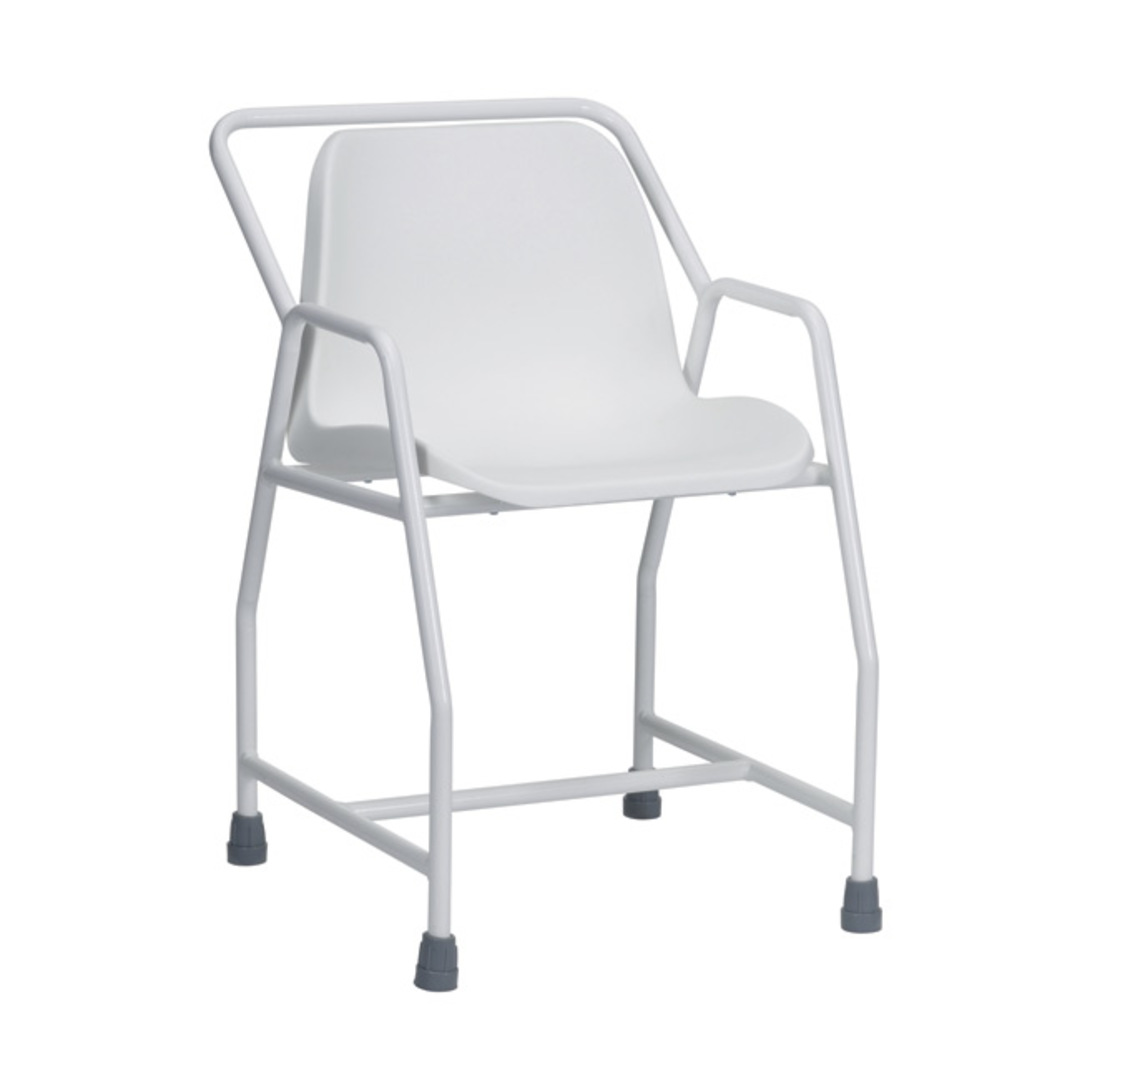 Foxton Stationary Shower Chair Fixed Height - Mobility Aids Uk